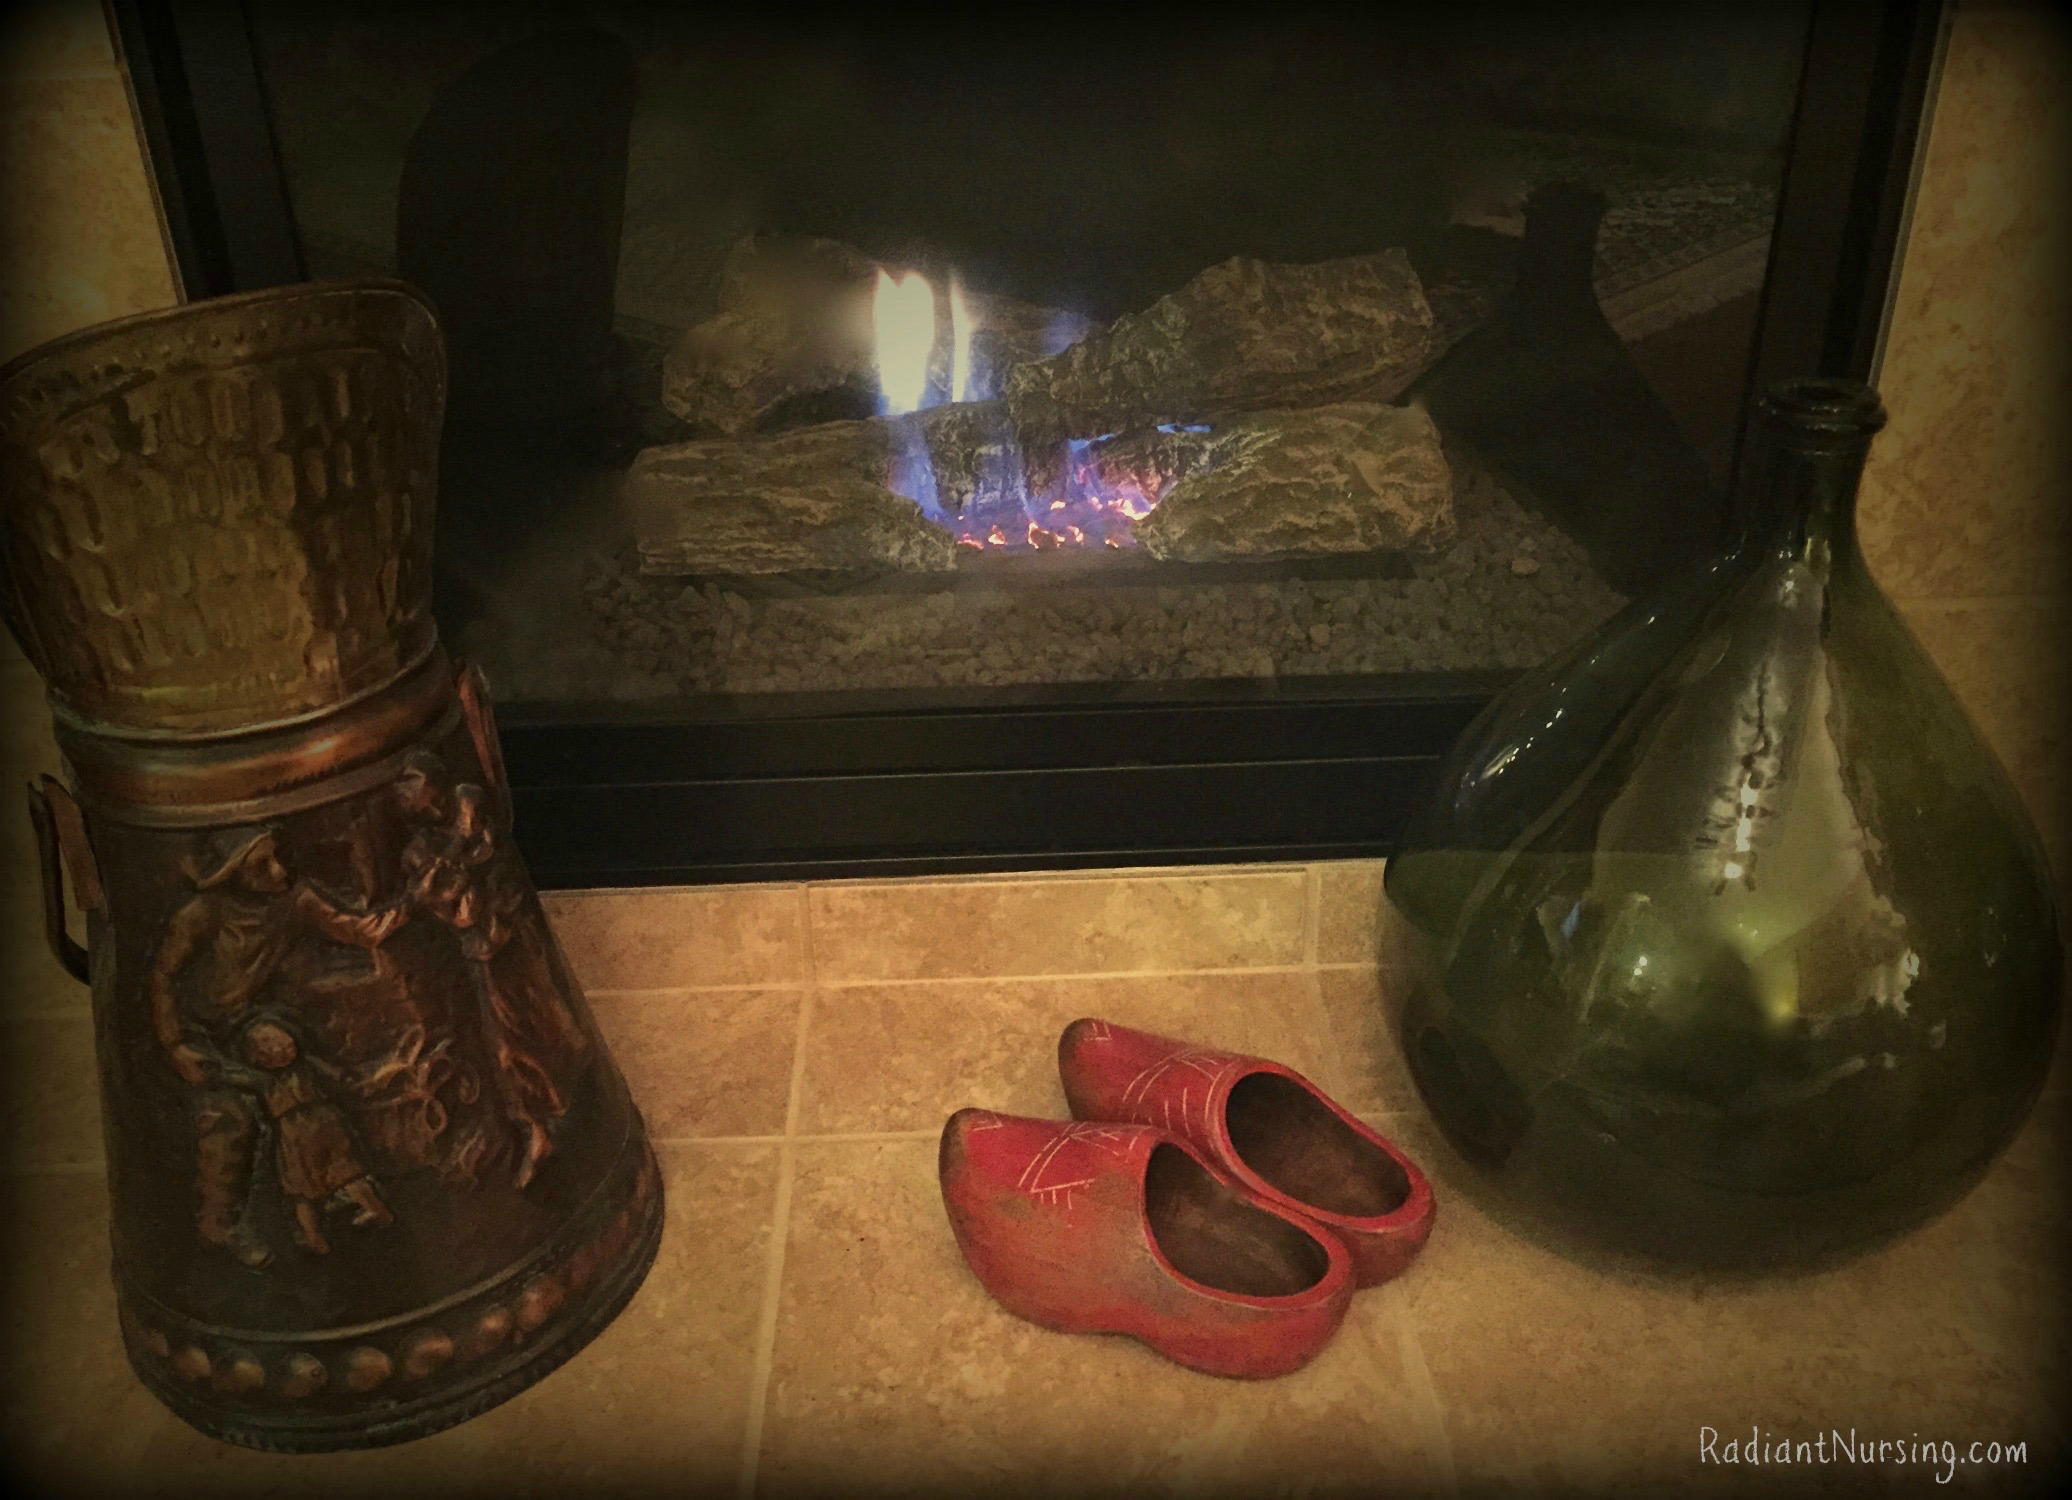 Wooden shoes are placed in front of the fire for the Feast Day of Saint Nicolas